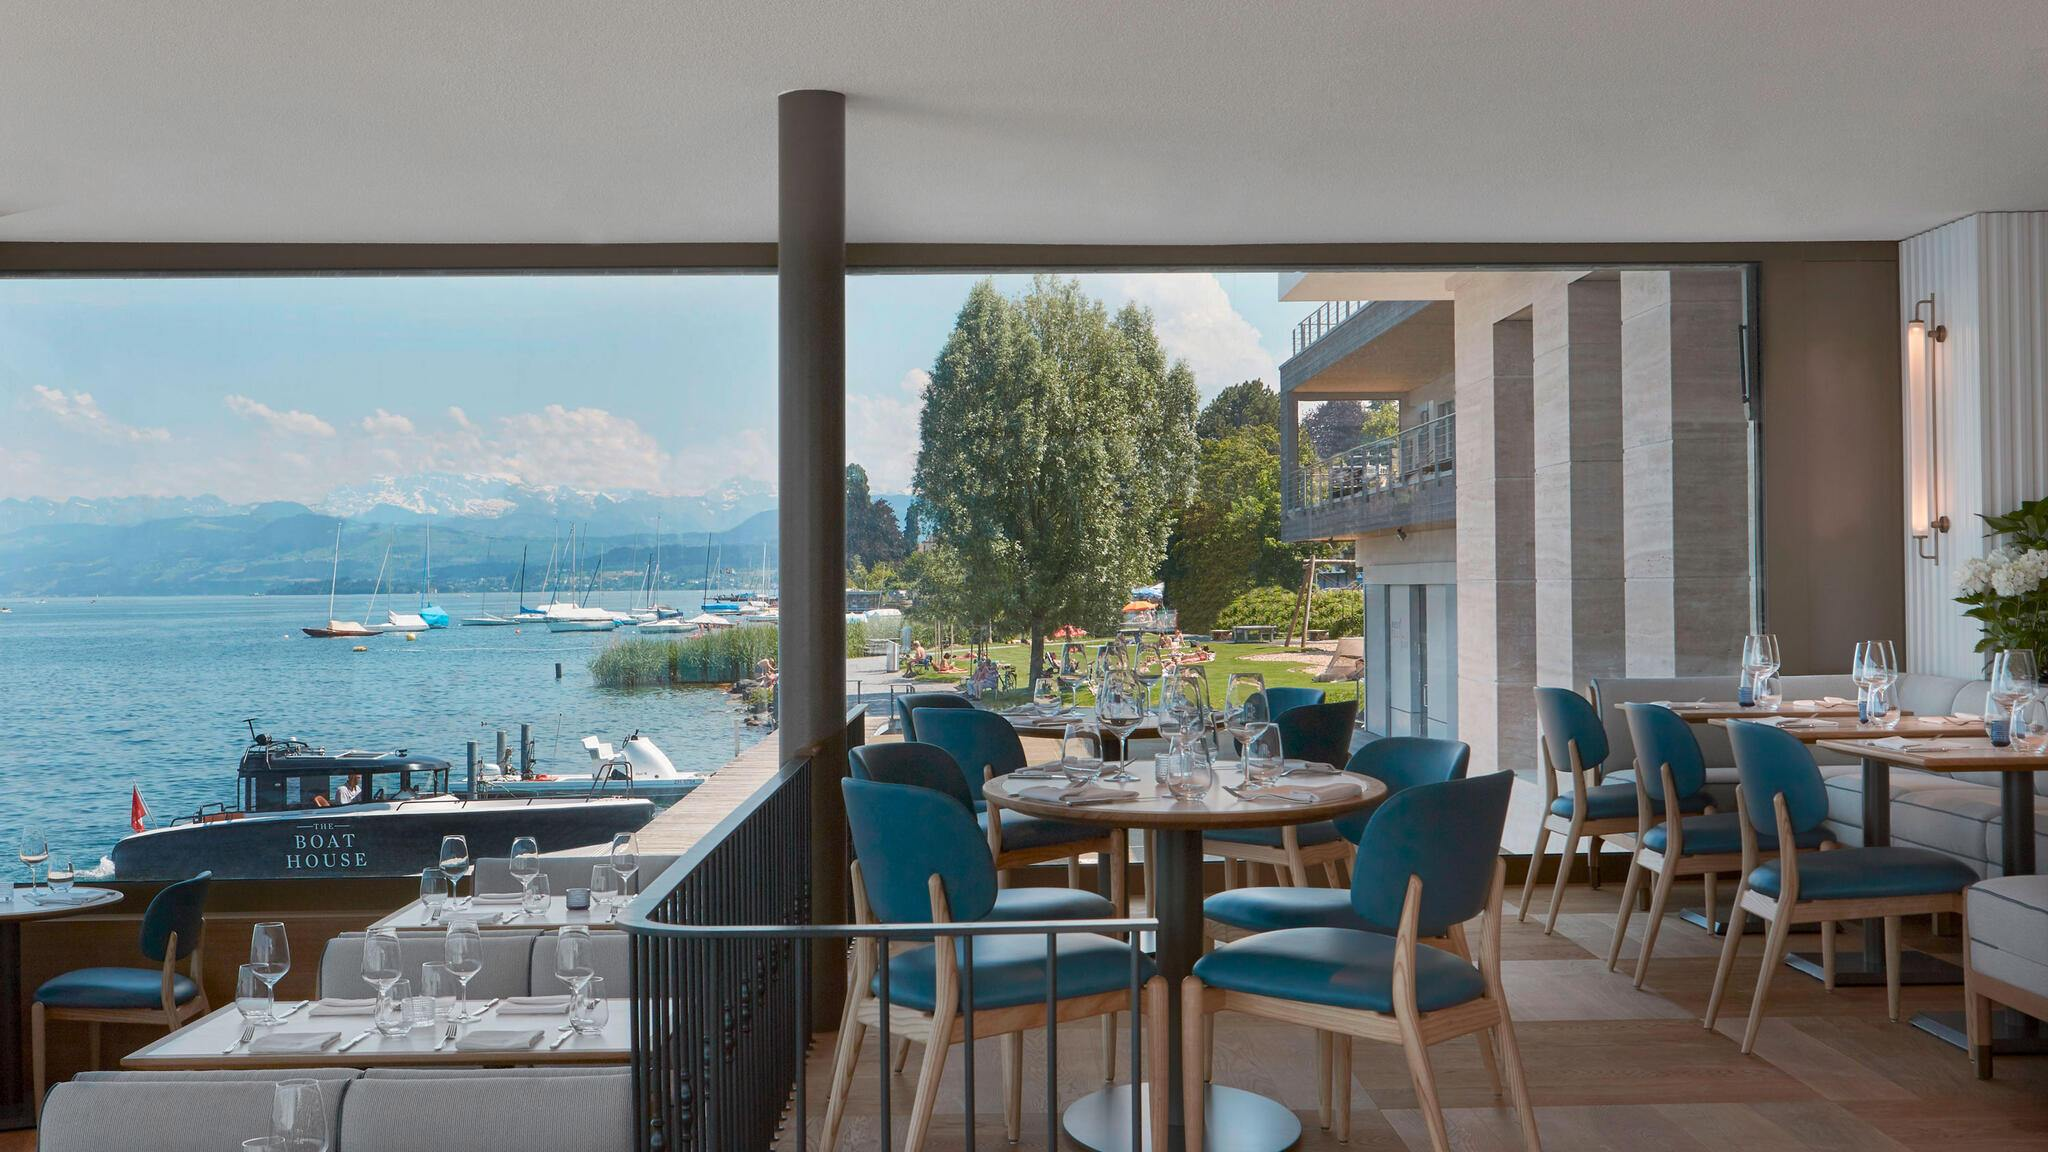 Thalwil boathouse